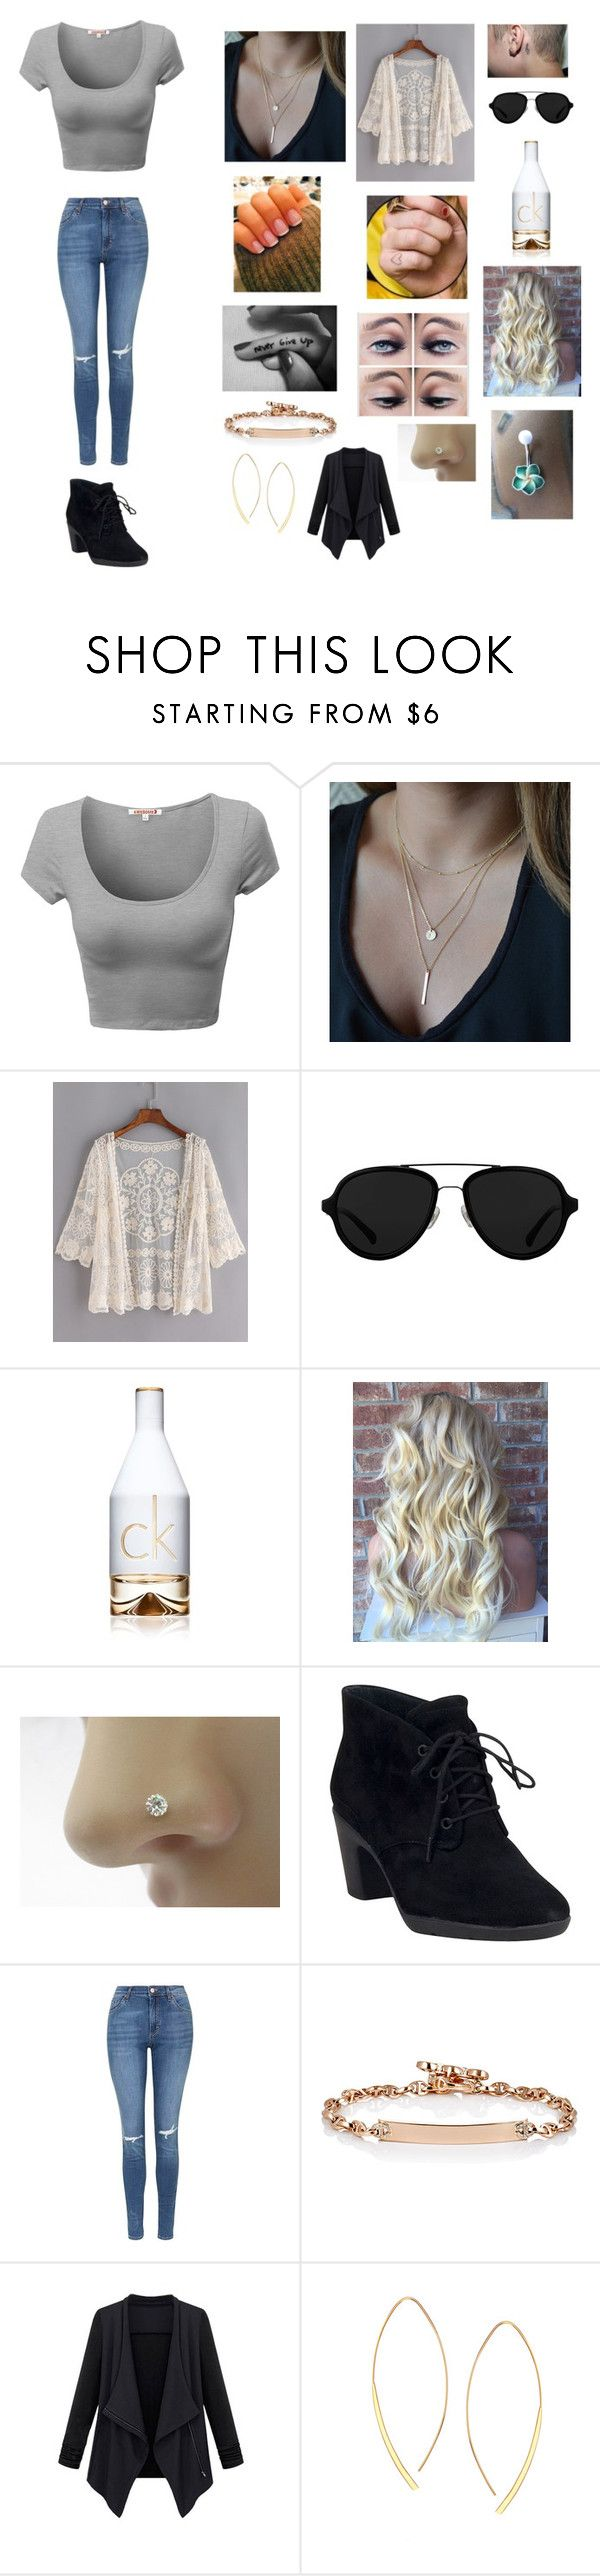 Untitled #213 by katrine-frid on Polyvore featuring Topshop, Clarks, Lana, Hoorsenbuhs, 3.1 Phillip Lim and Calvin Klein